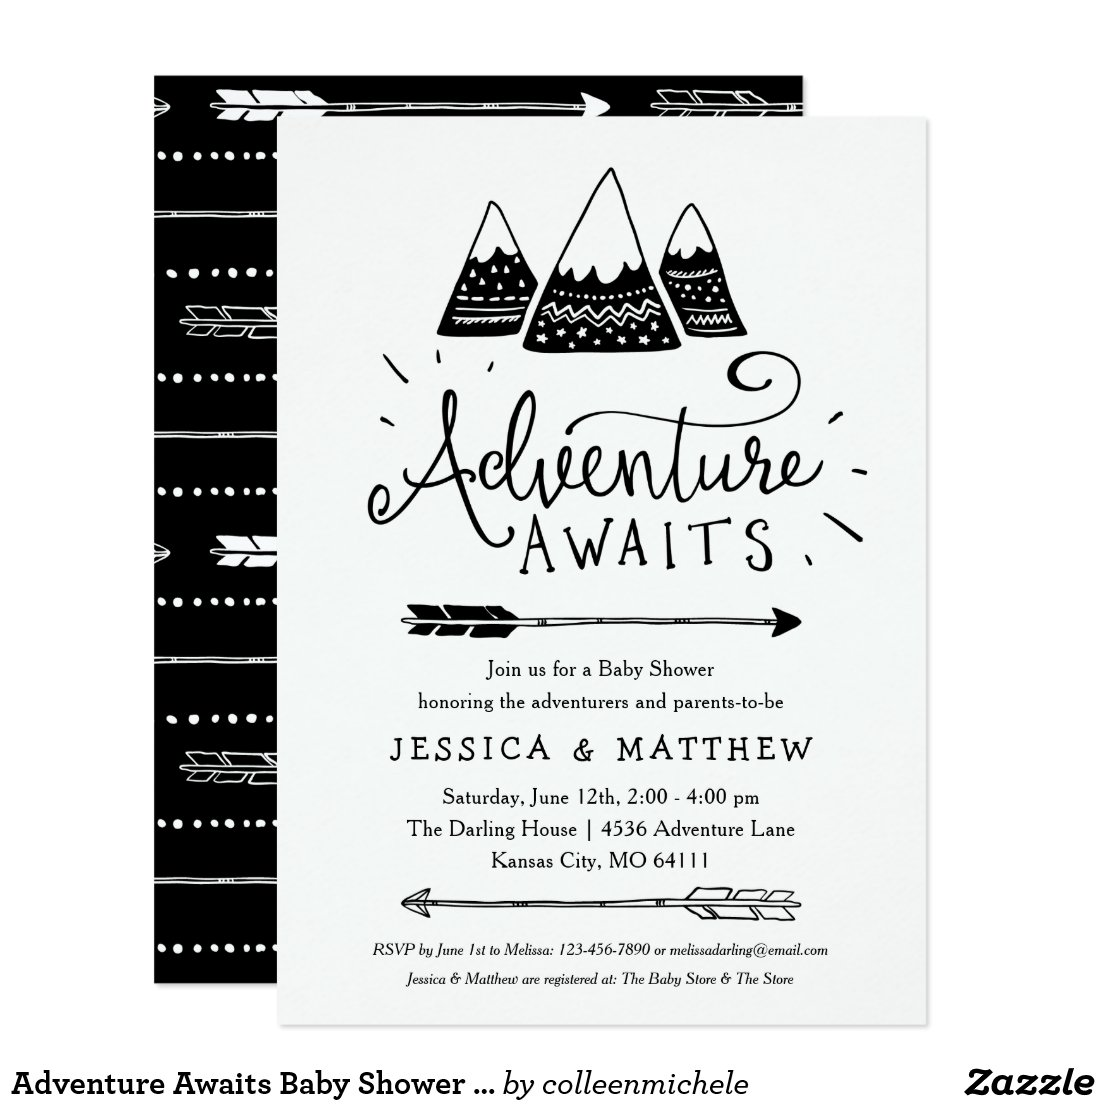 Adventure Awaits Baby Shower Invitations